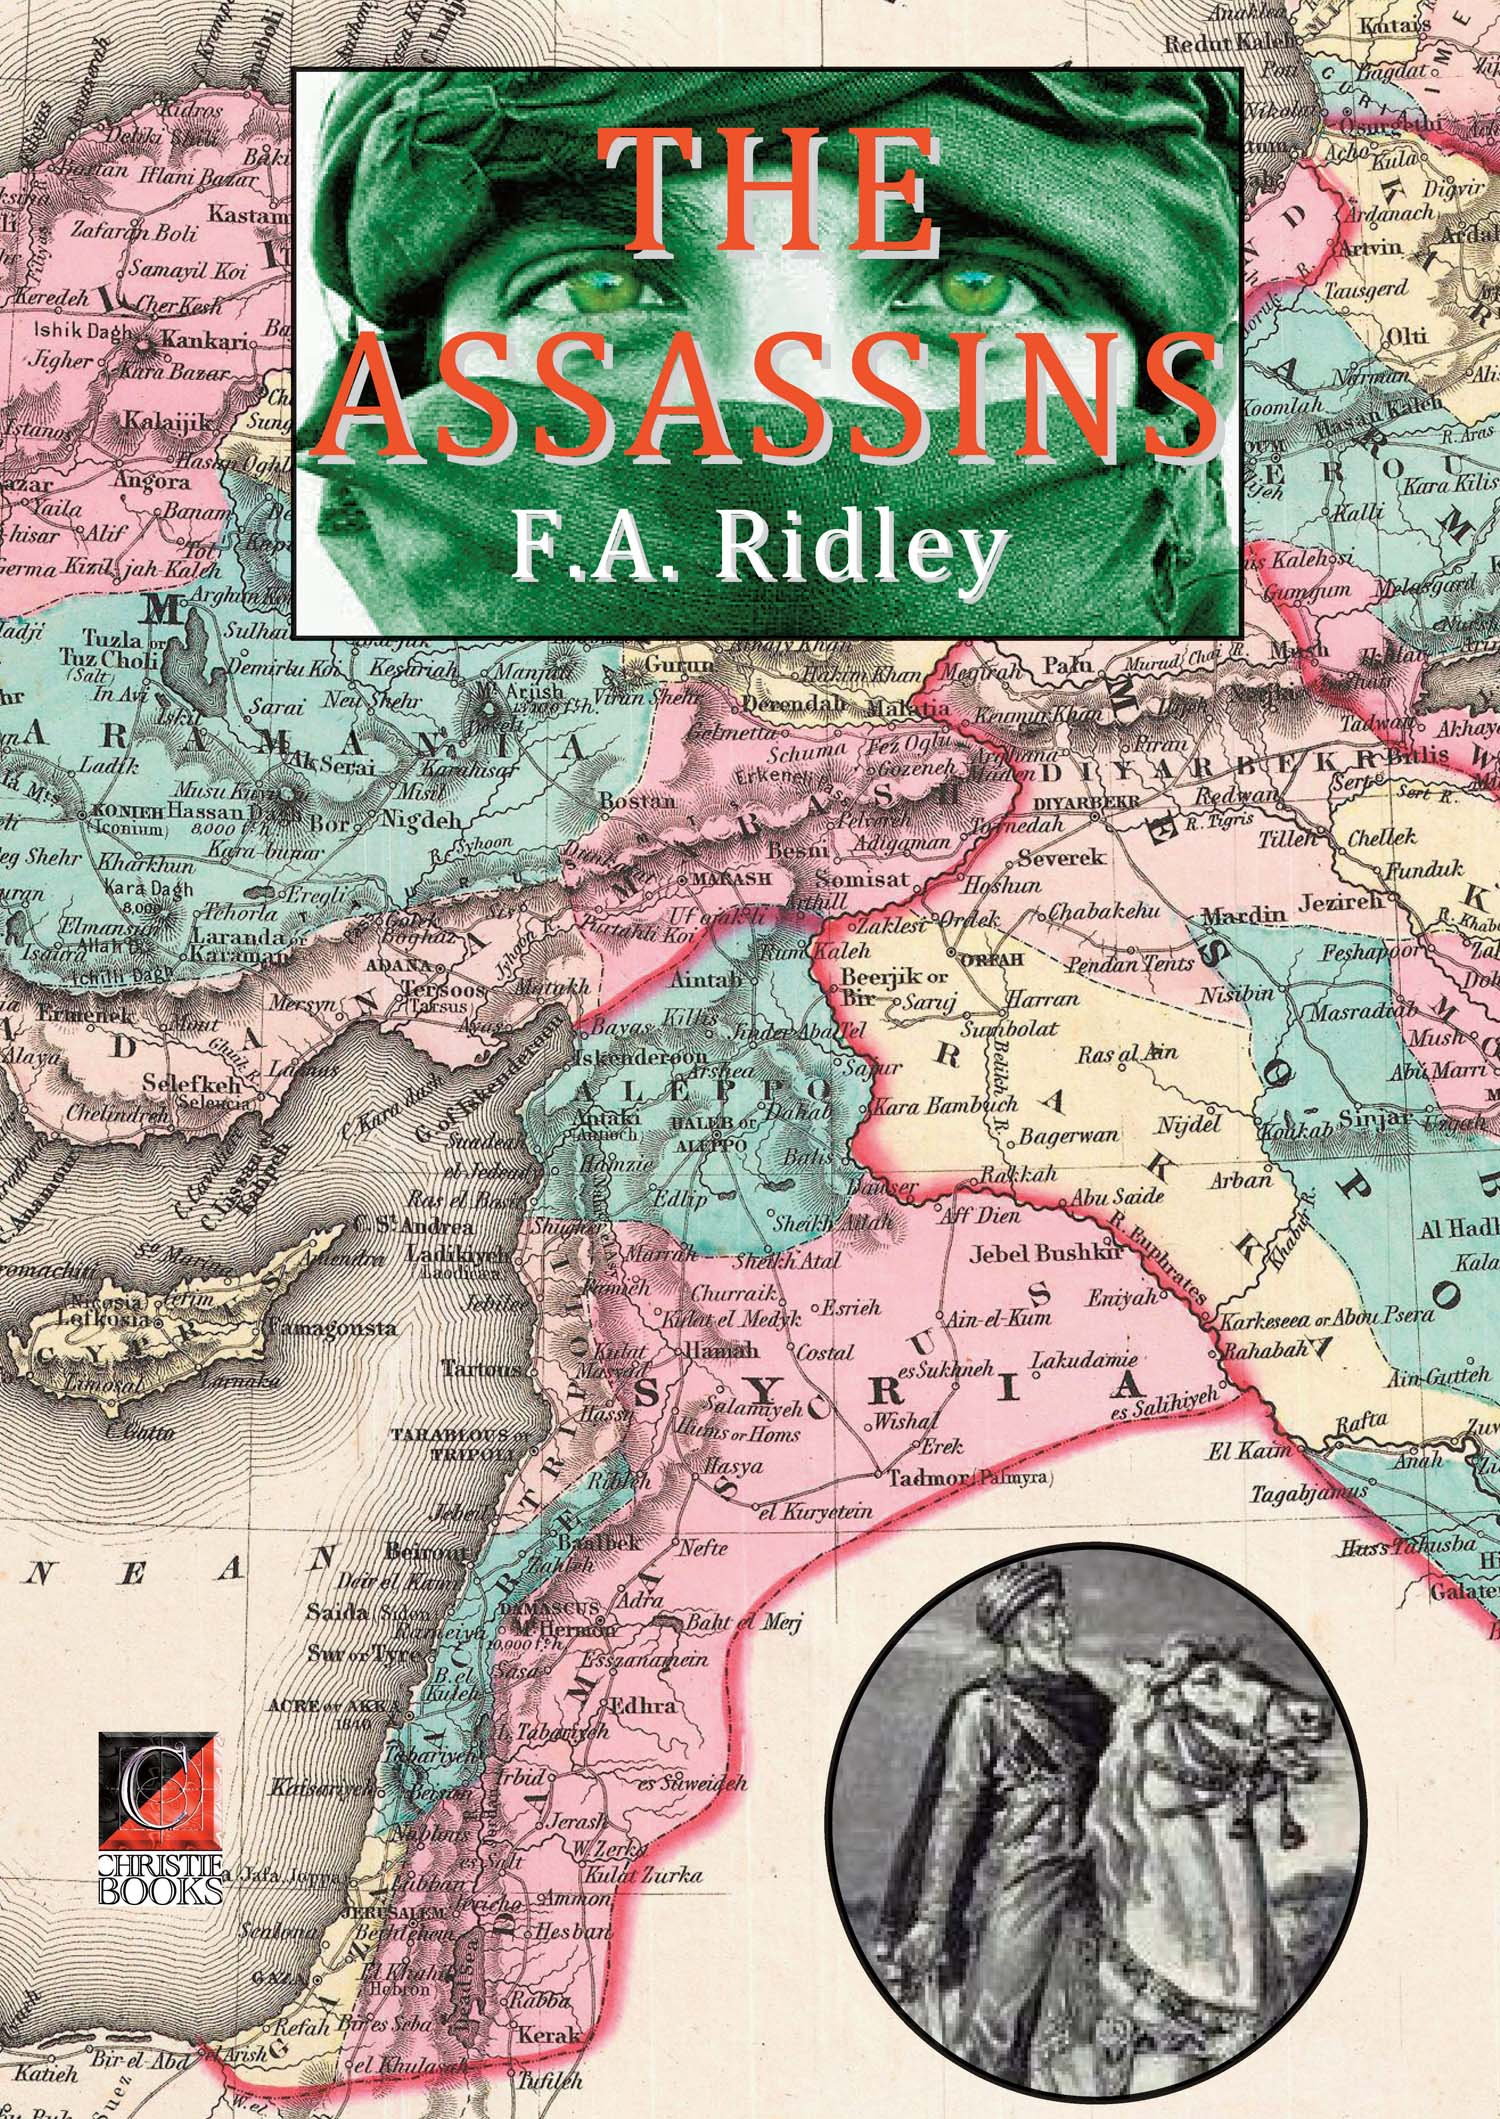 THE ASSASSINS — F. A. Ridley